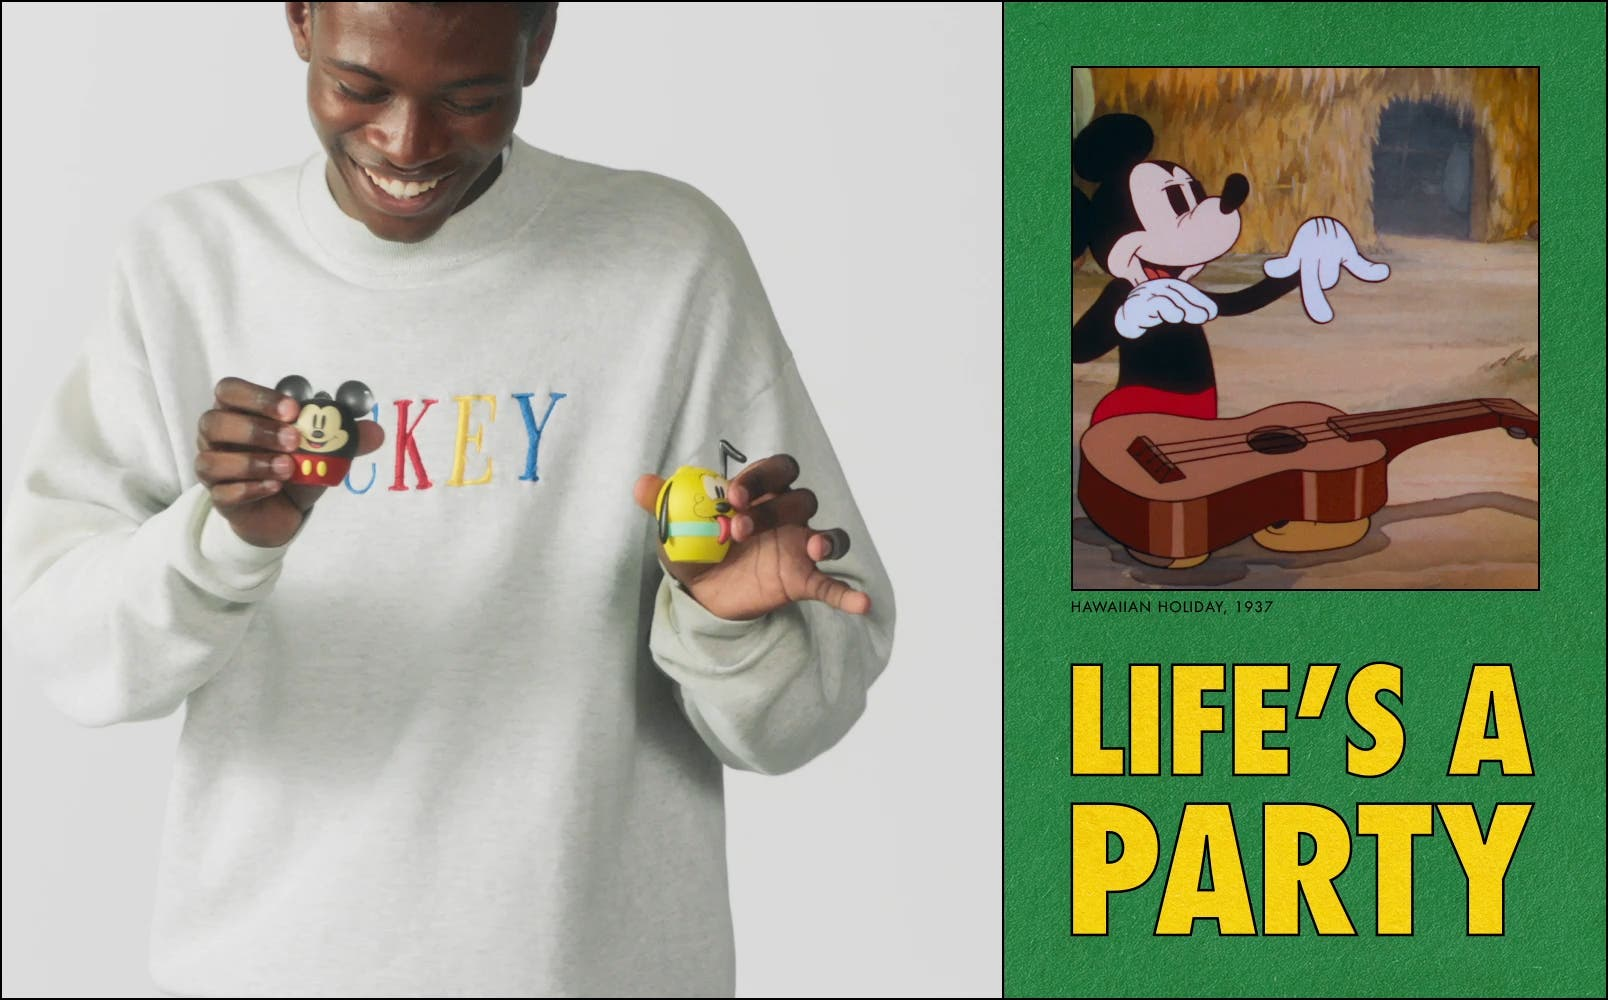 Video of models in Disney jackets and sweatshirts dancing with mini Disney speakers; video of Daisy Duck dancing with Huey, Dewey, and Louie.